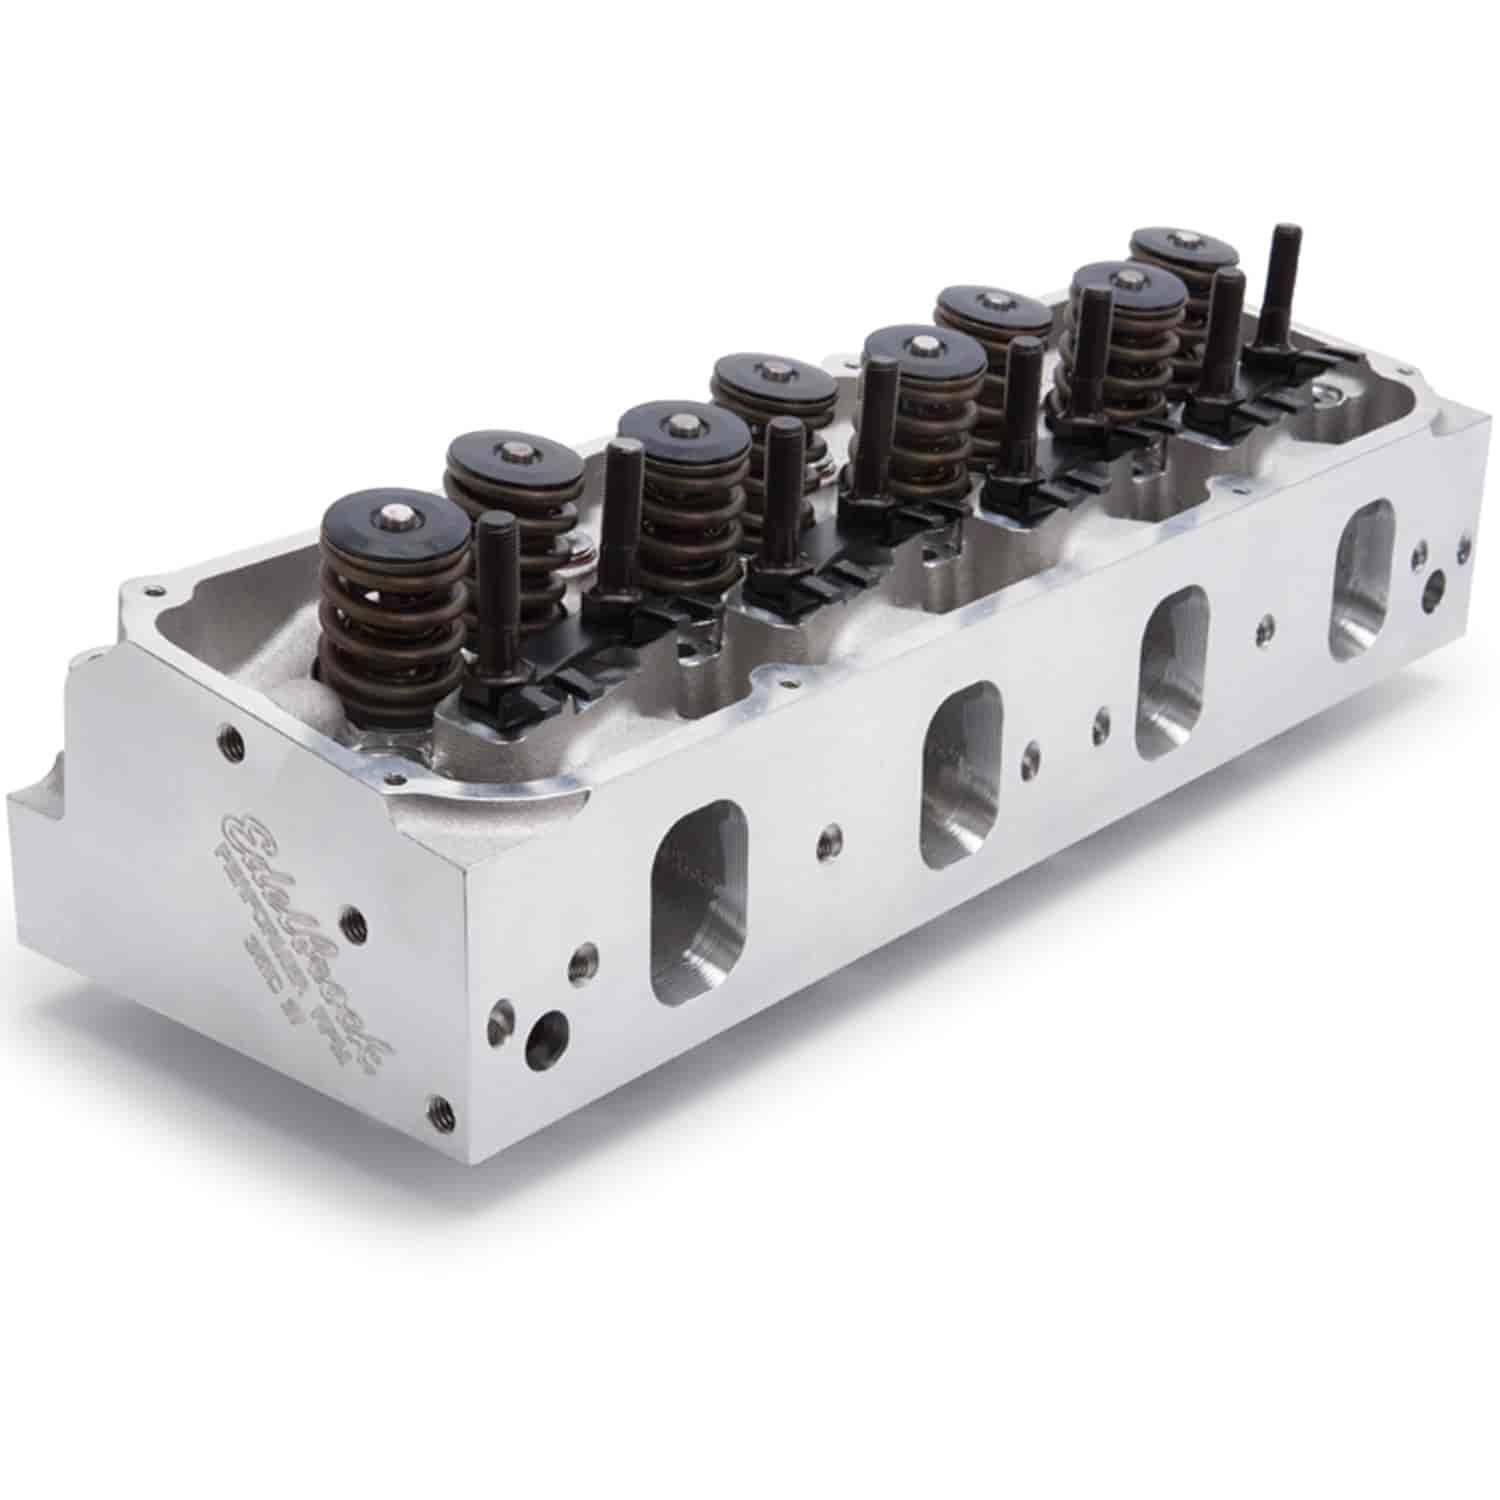 Edelbrock Performer RPM Clevor Cylinder Heads for Small Block Ford